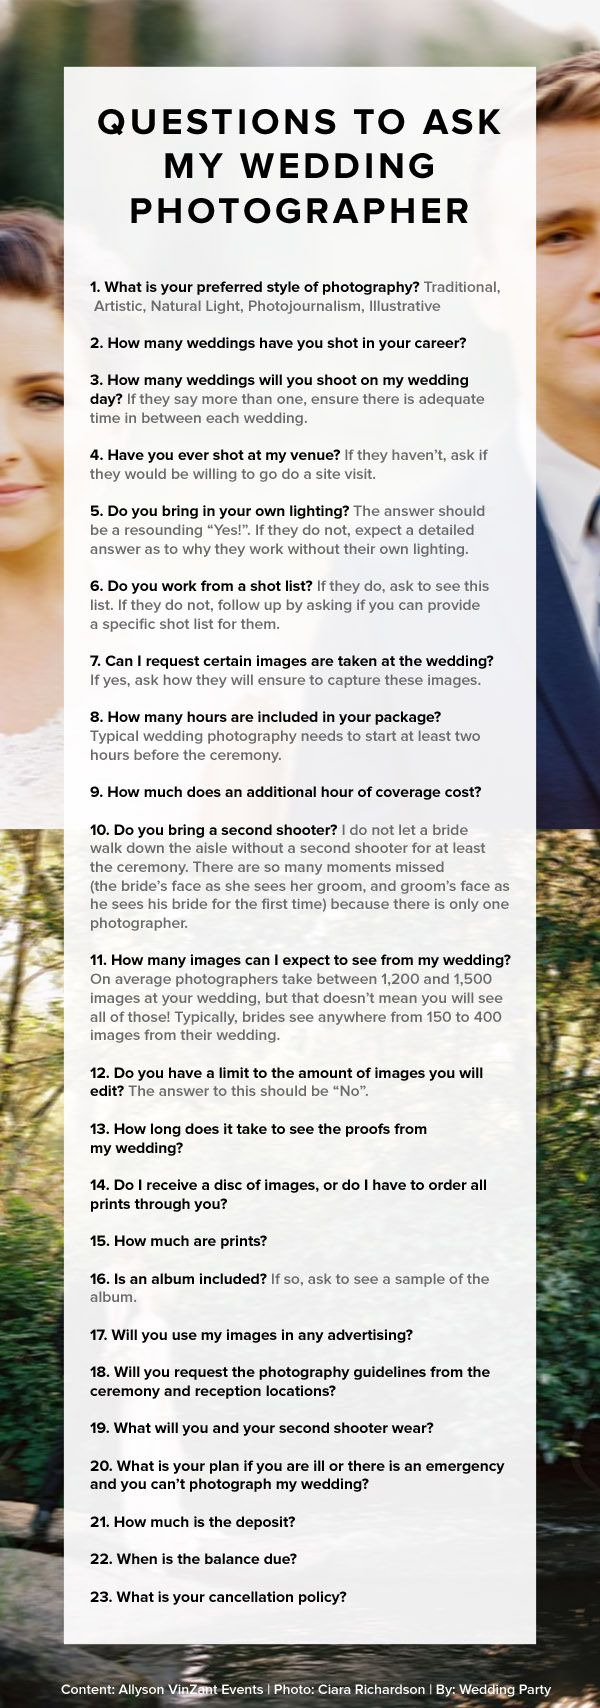 questions to ask my wedding photographer by allyson vinzant events questions for your photographer at any event for weddings and other big family events it s important to let them know about any family issues that